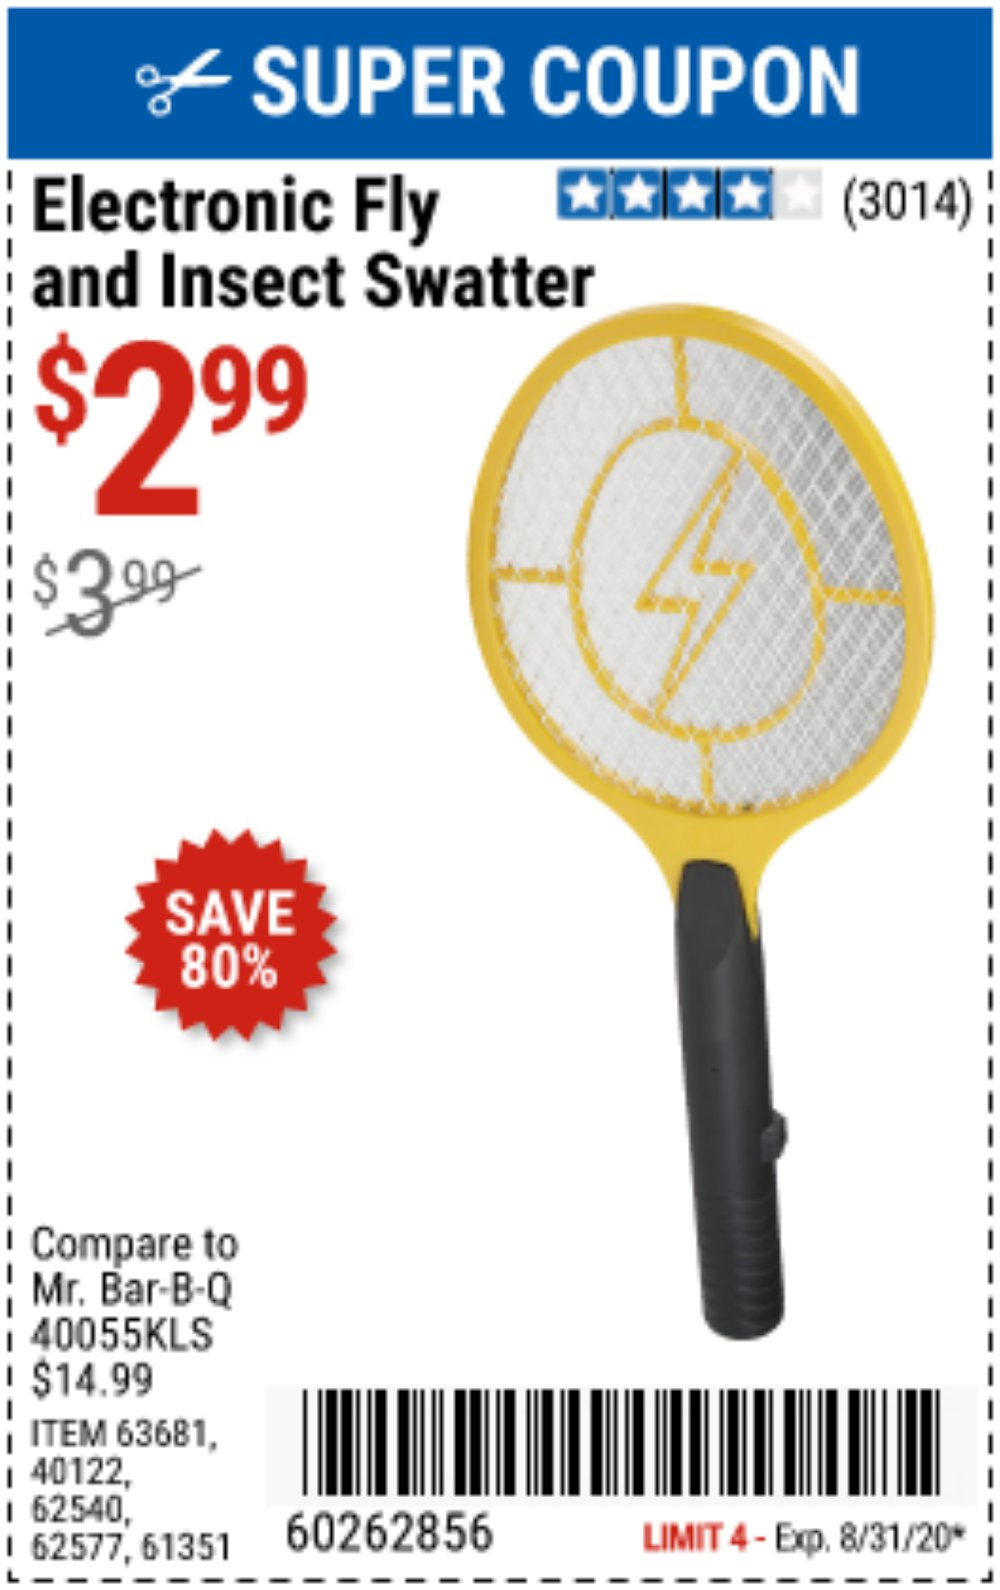 Harbor Freight Coupon, HF Coupons - Electric Fly Swatter